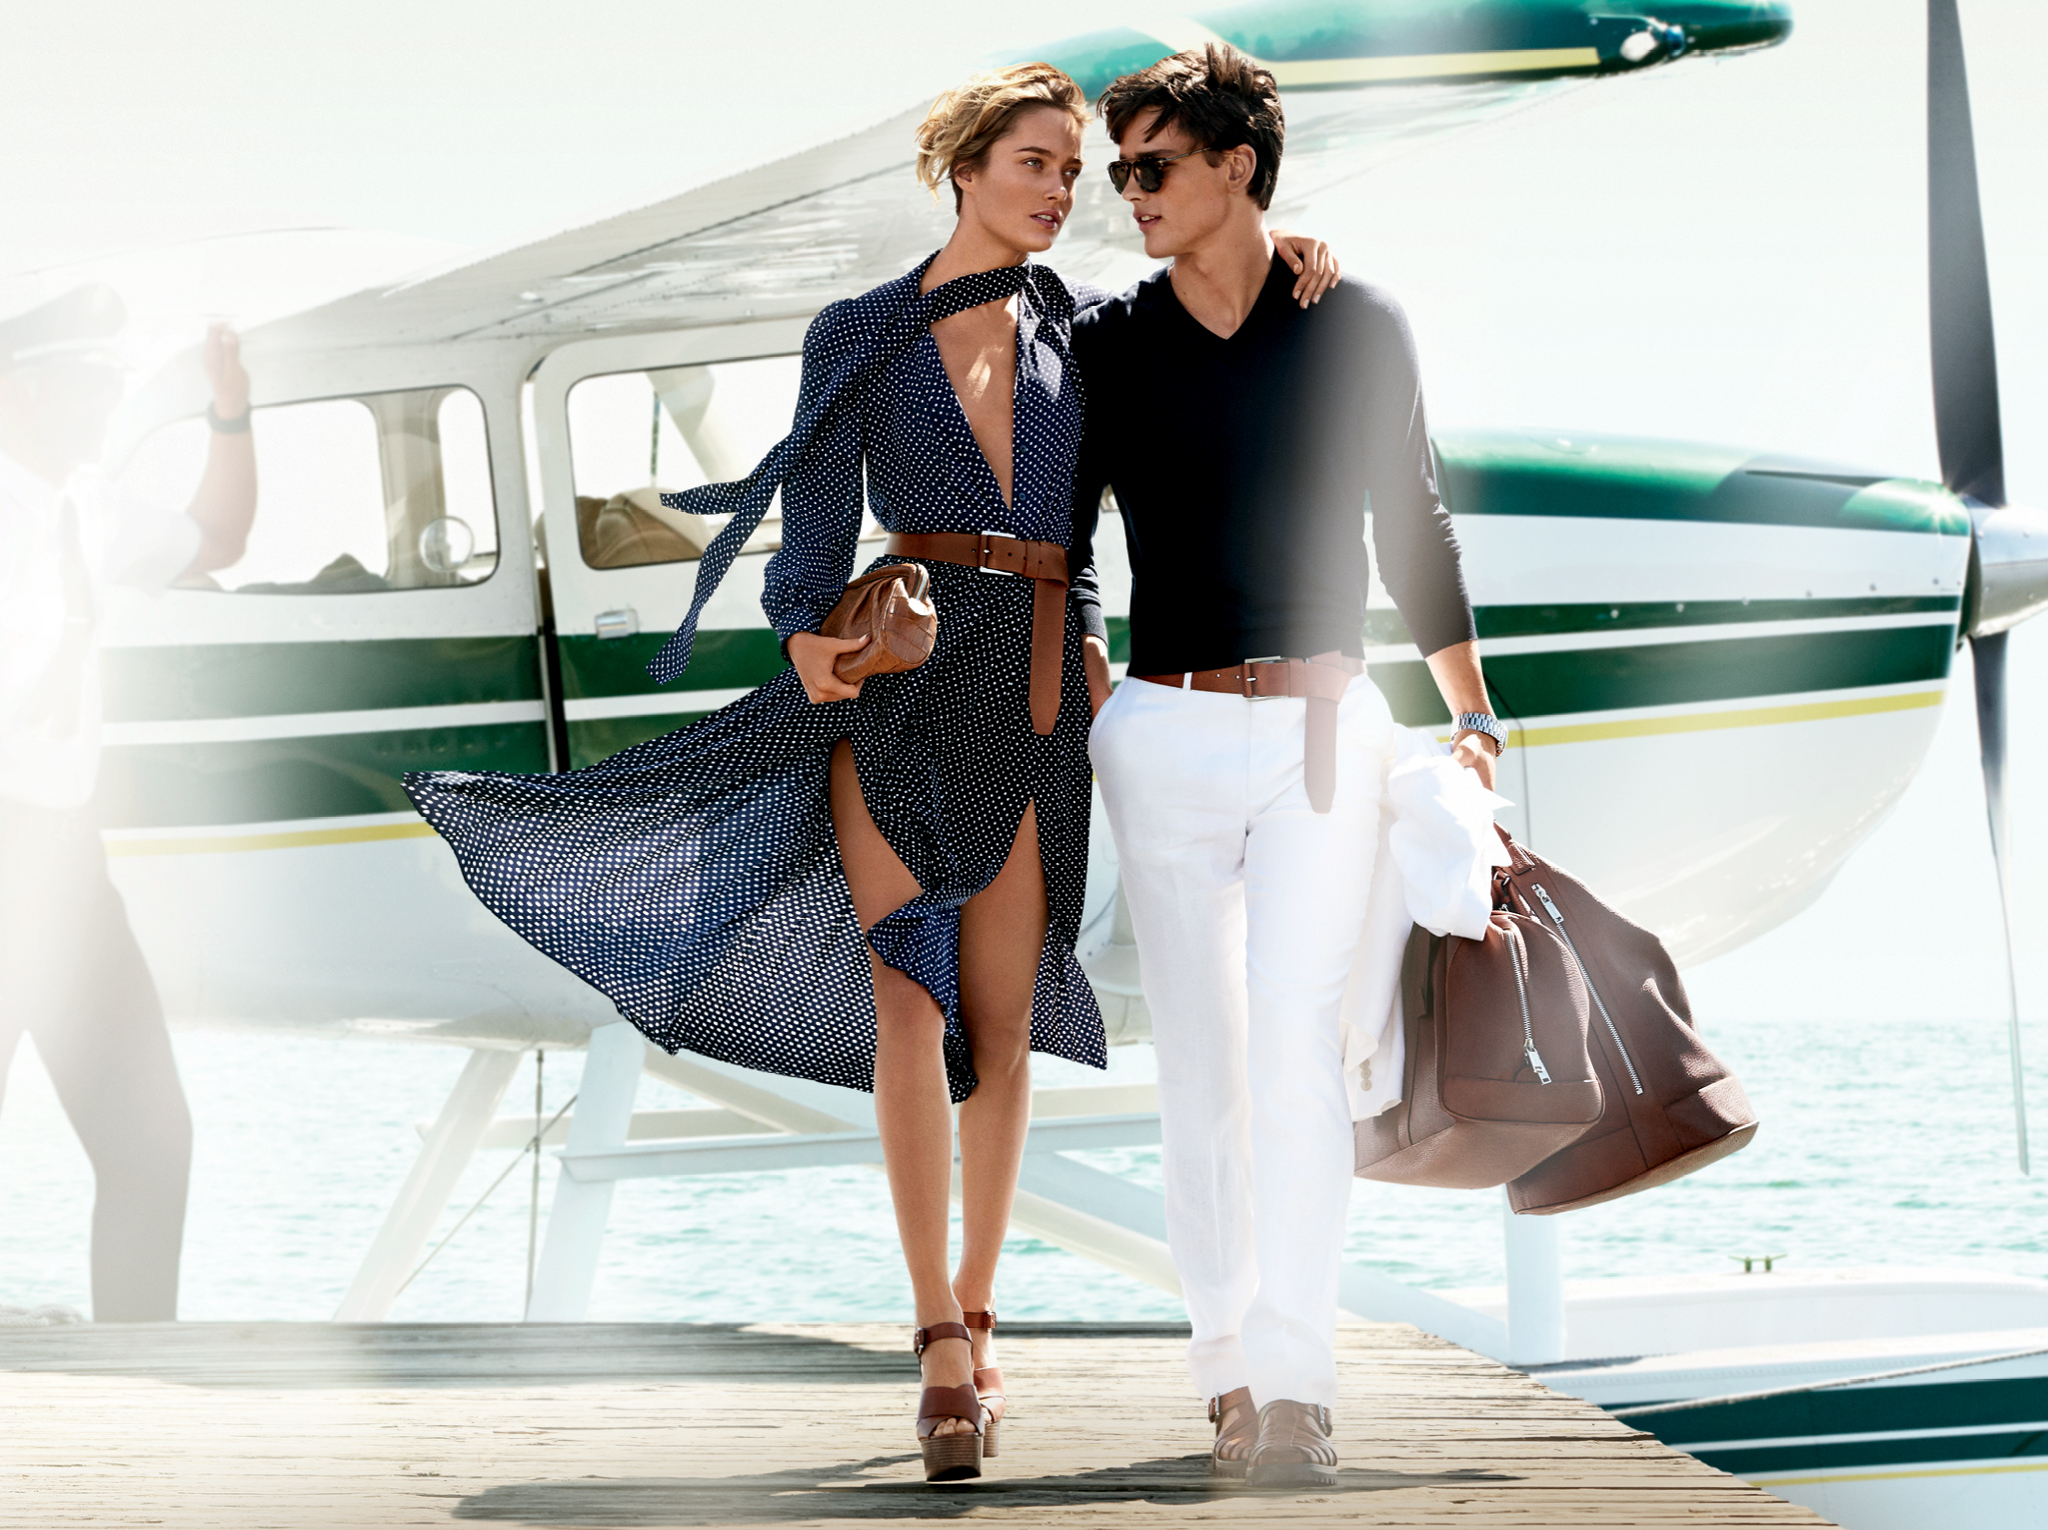 Michael Kors. Spring 2014 Ad Campaign, 01.14.14